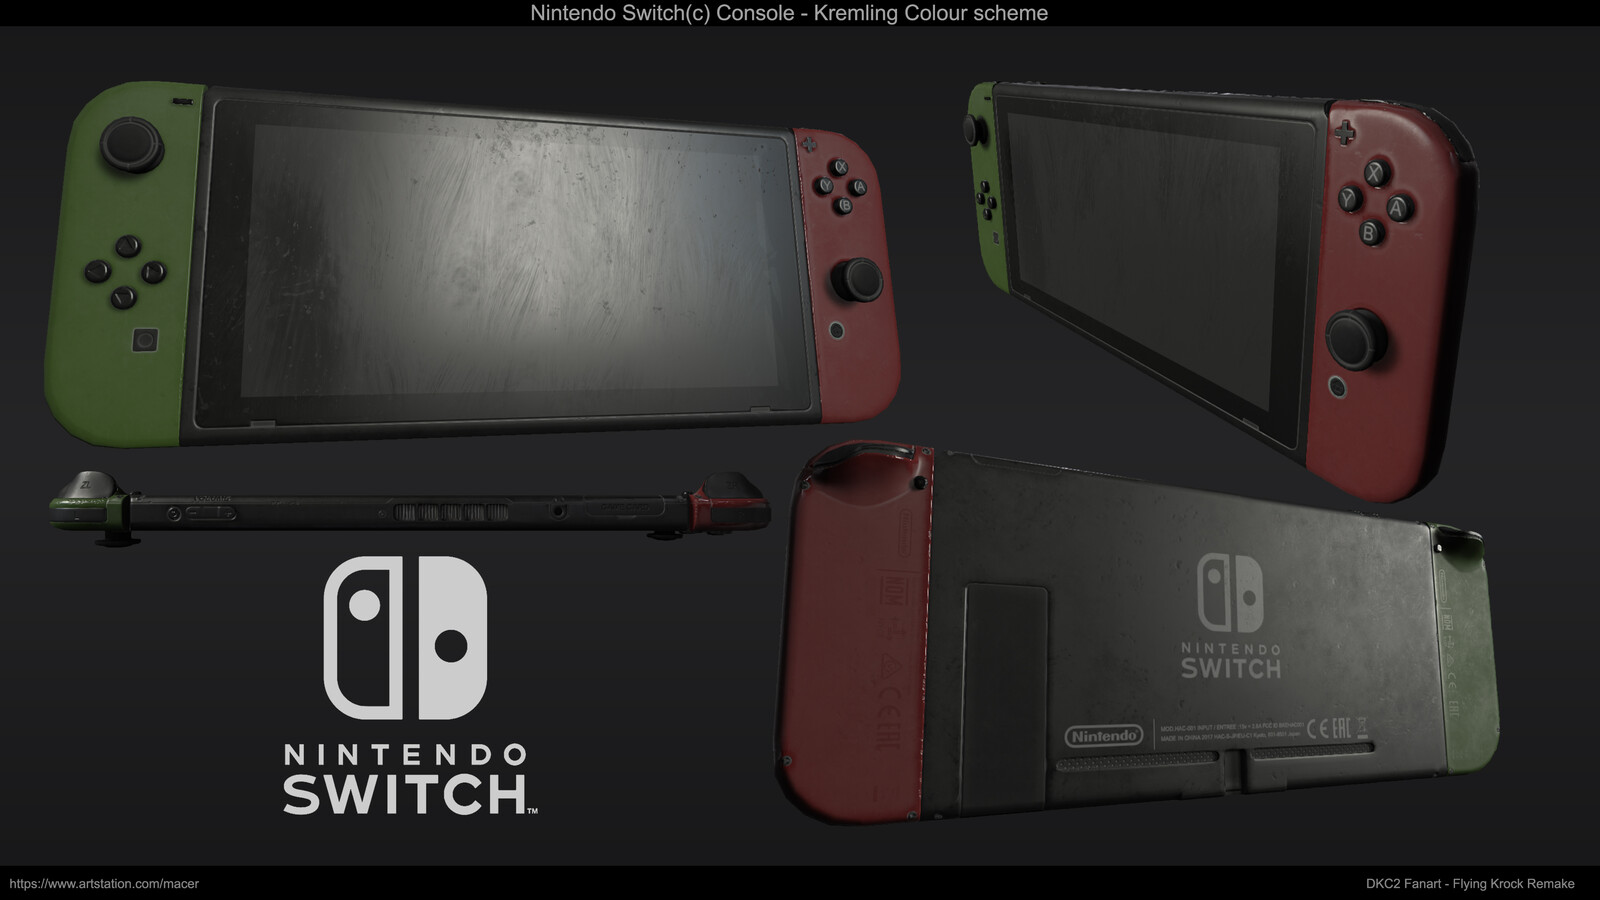 A couple Painter shots of the Switch console, cheekily replacing the SNES controller in the back of the scene. This is the Kremling Special Edition.